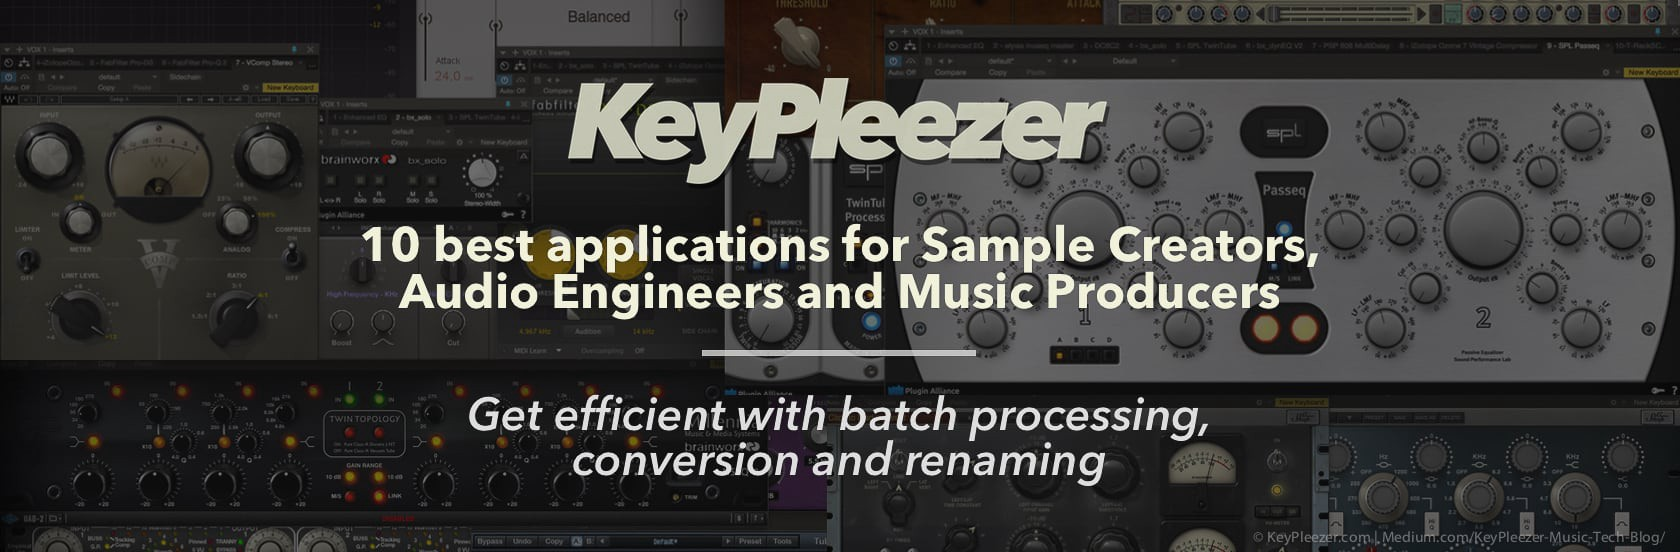 normalizer music definition